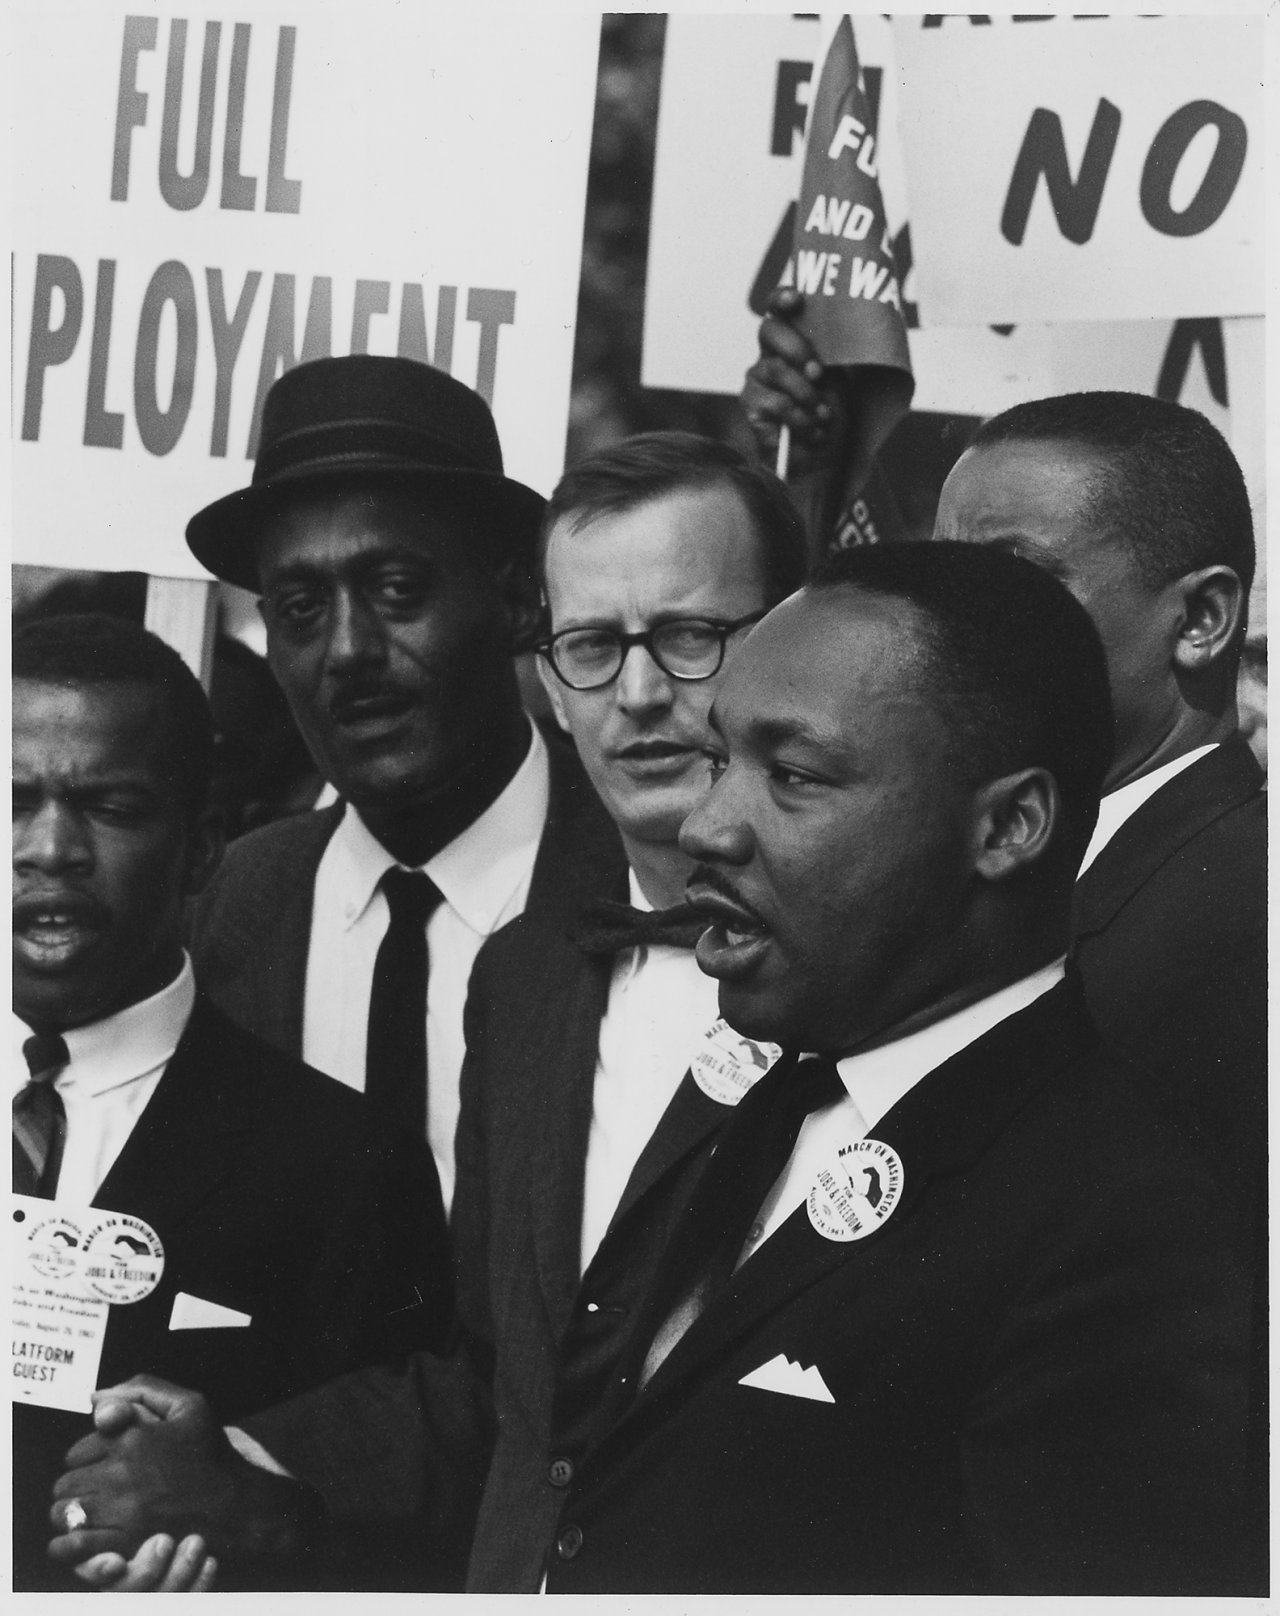 Martin Luther King Jr. at 1963 March on Washington